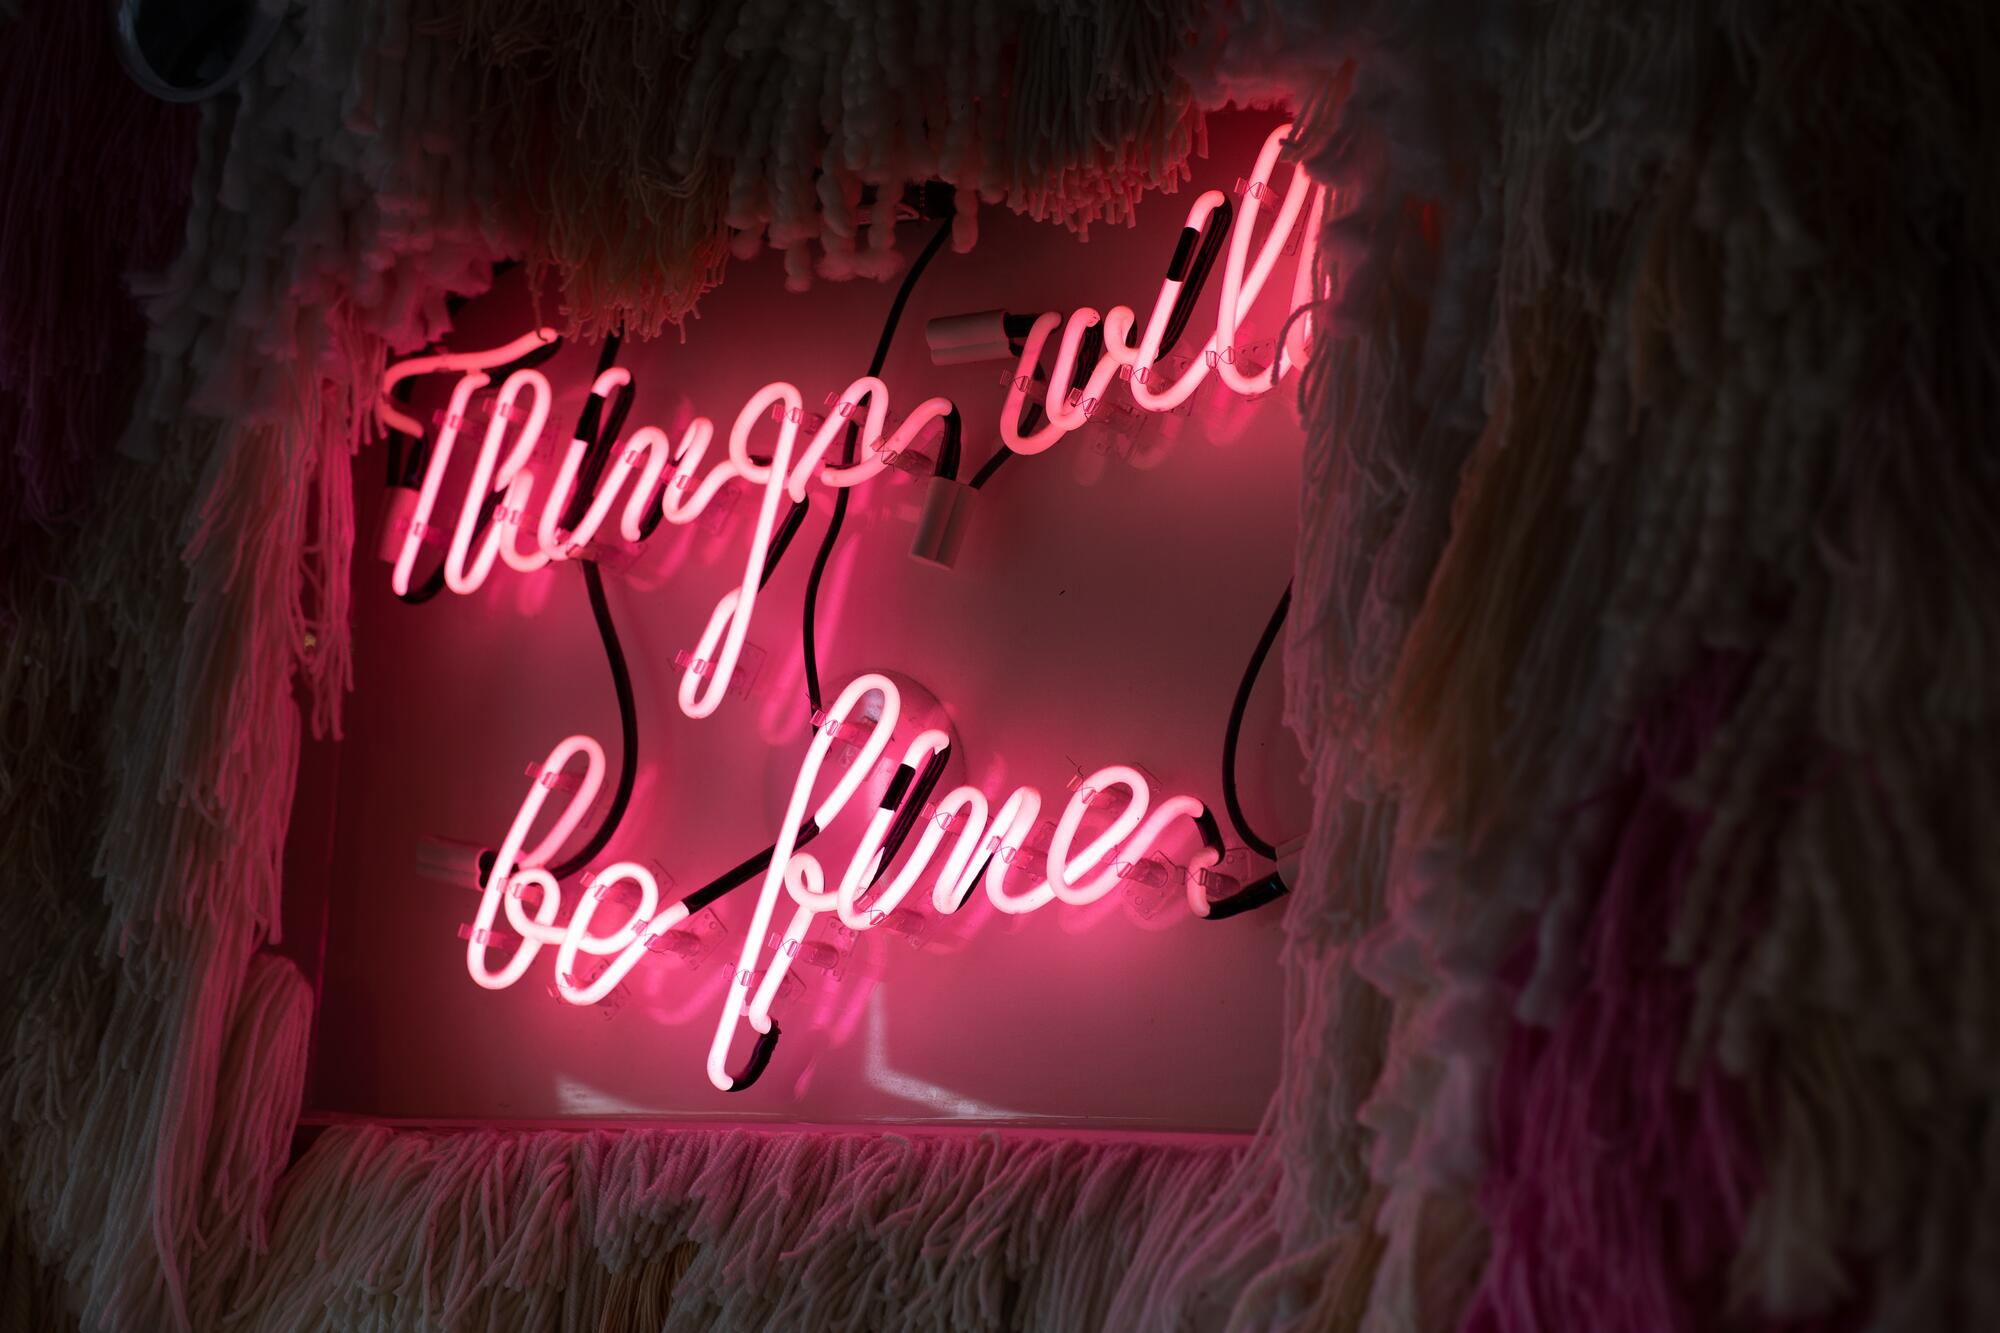 Things will be fine!